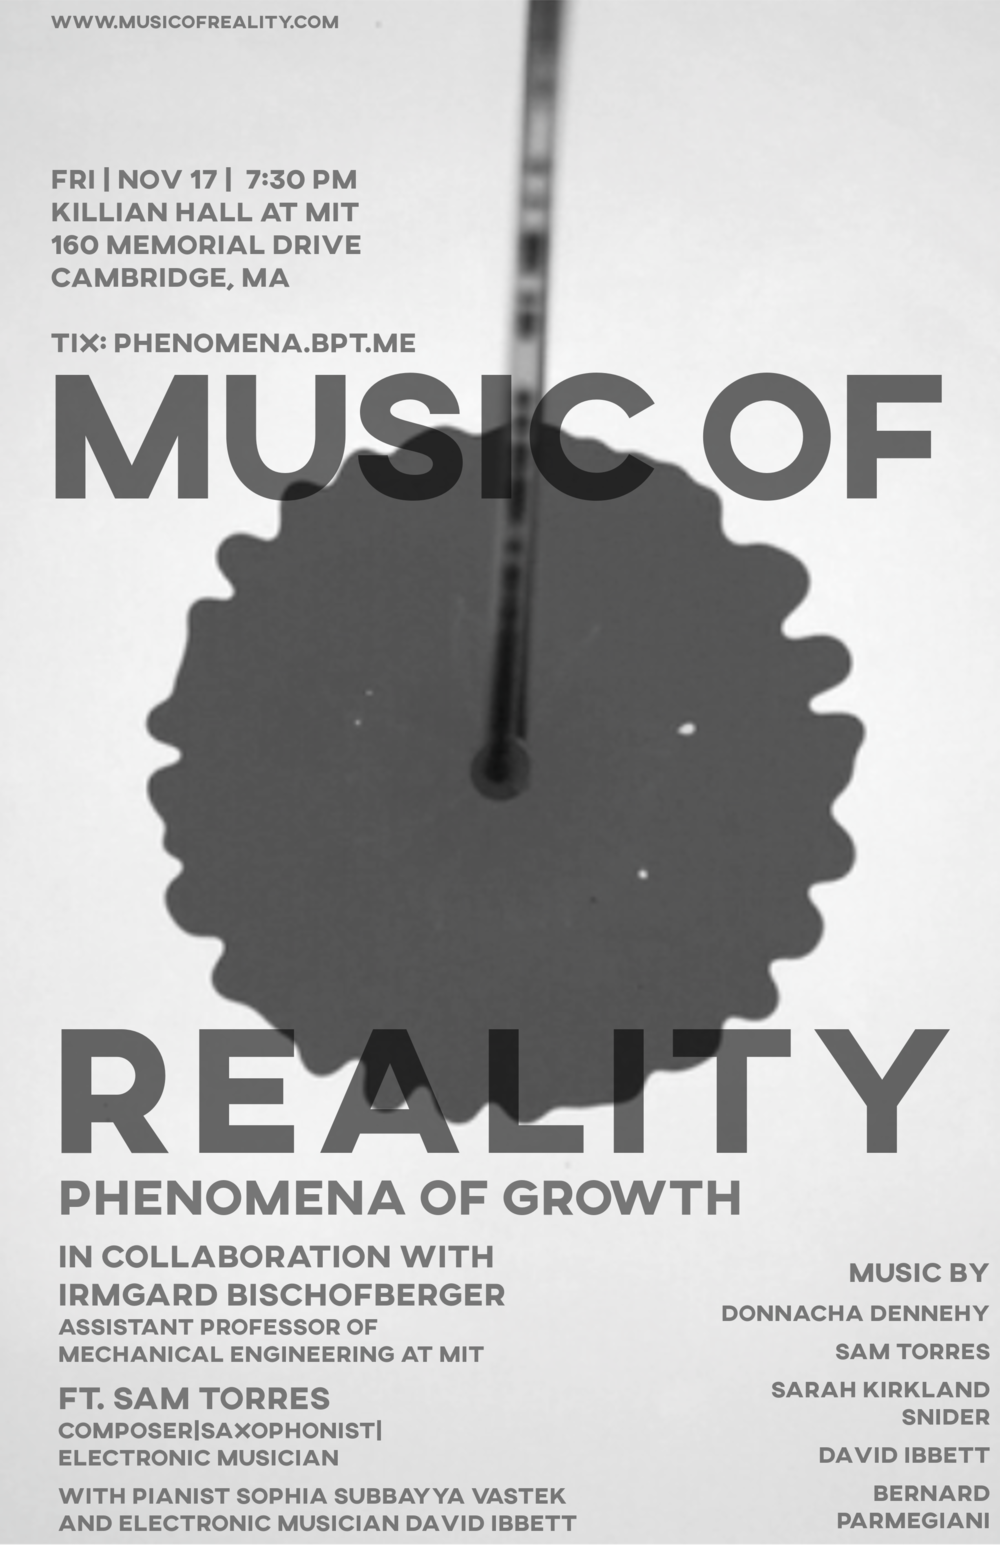 phenomena of growth poster.png